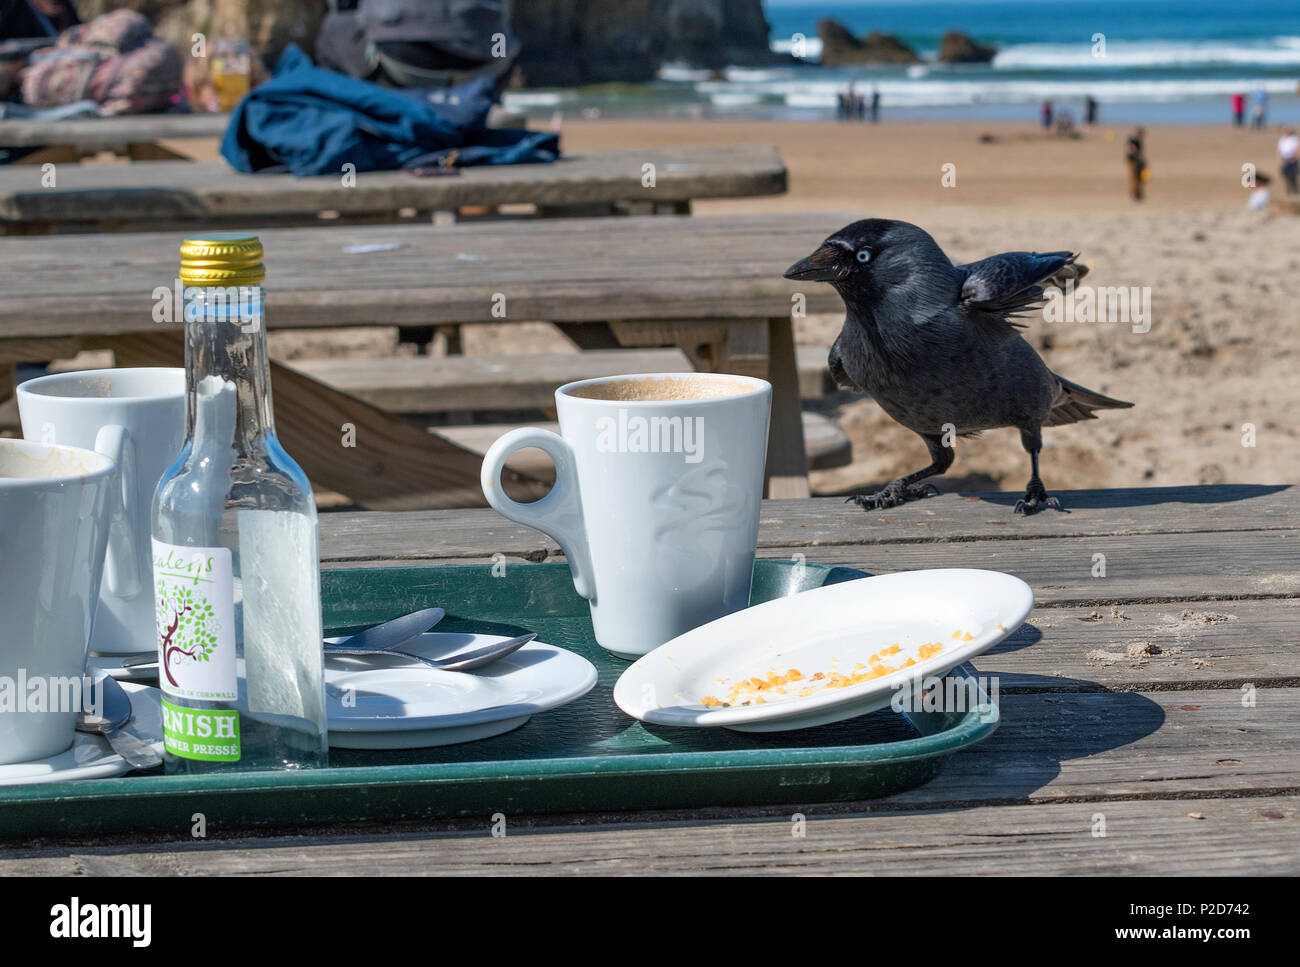 jackdaw scavenging for leftover food at a beach cafe table in cornwall, england, britai, uk. - Stock Image